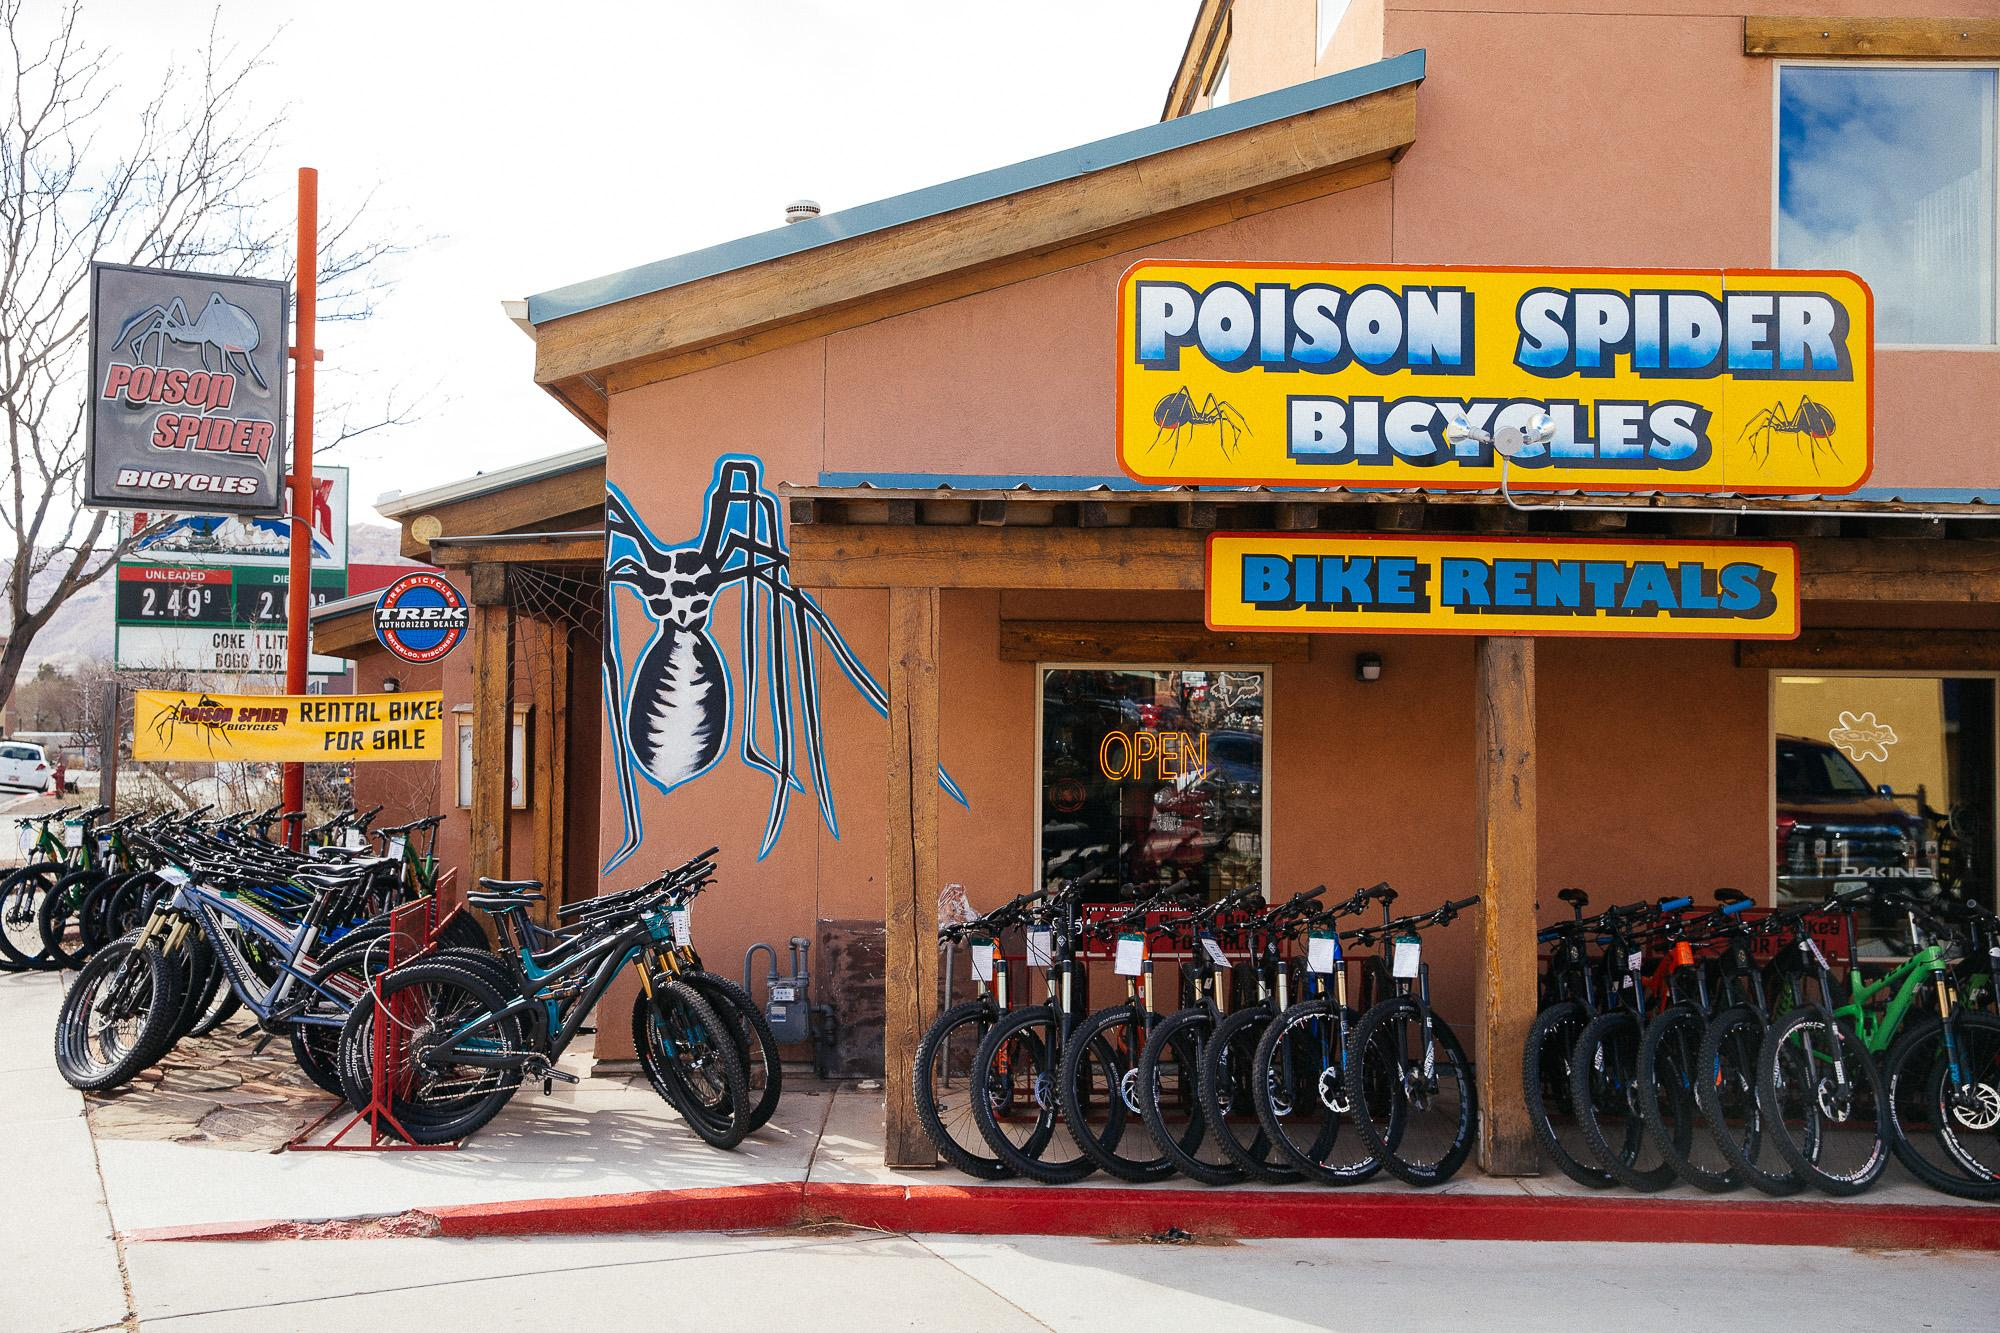 Stop by the Poison Spider